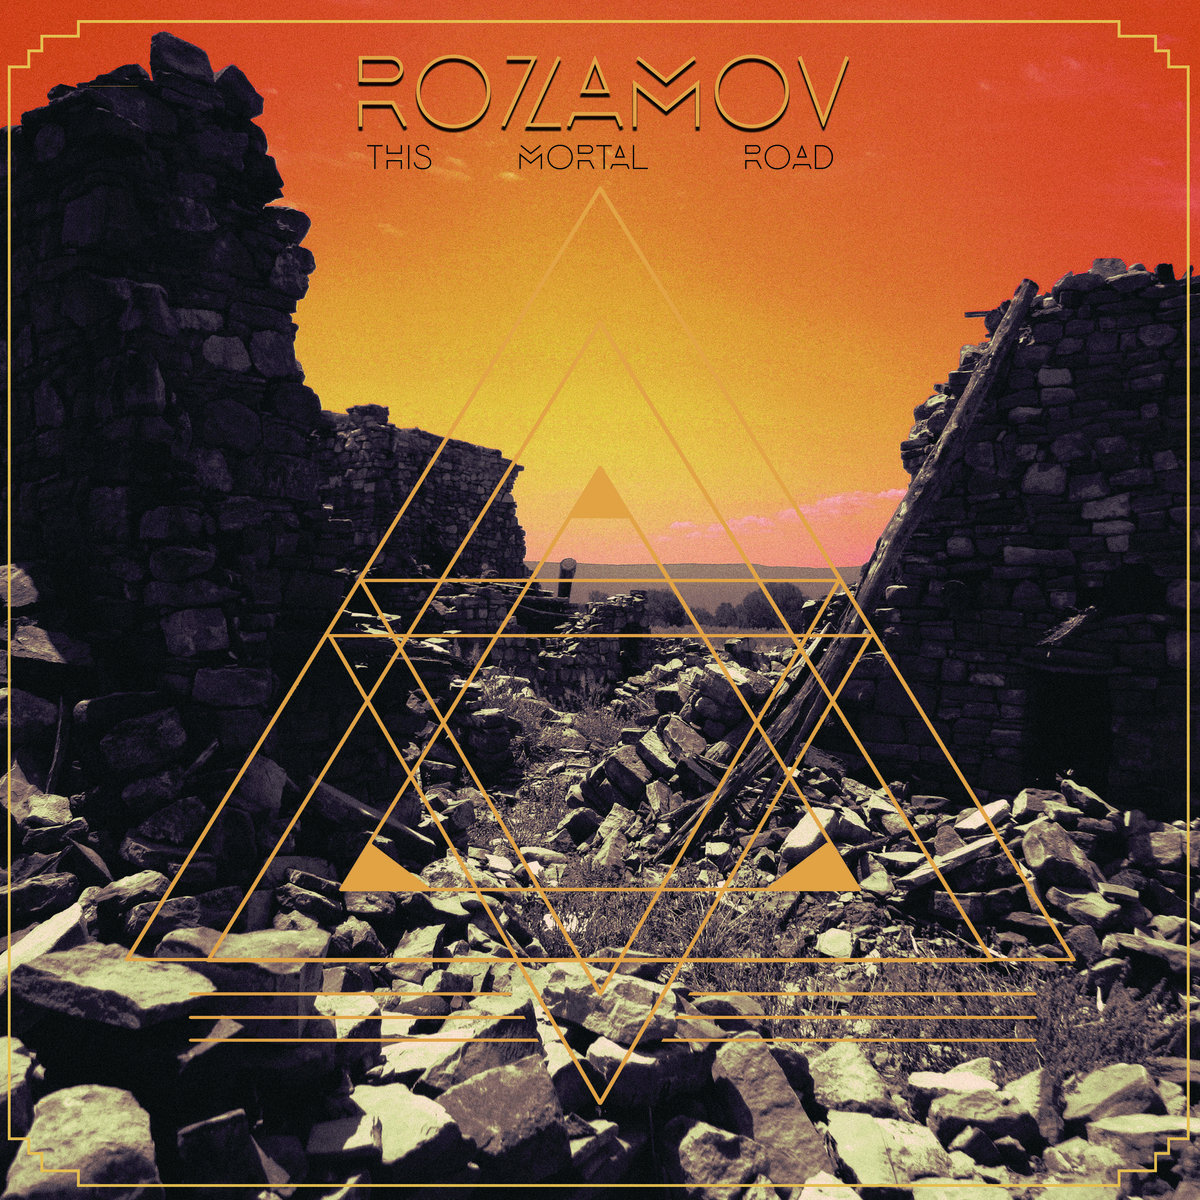 rozamov-this-mortal-road-andrew-weiss-matt-martinez